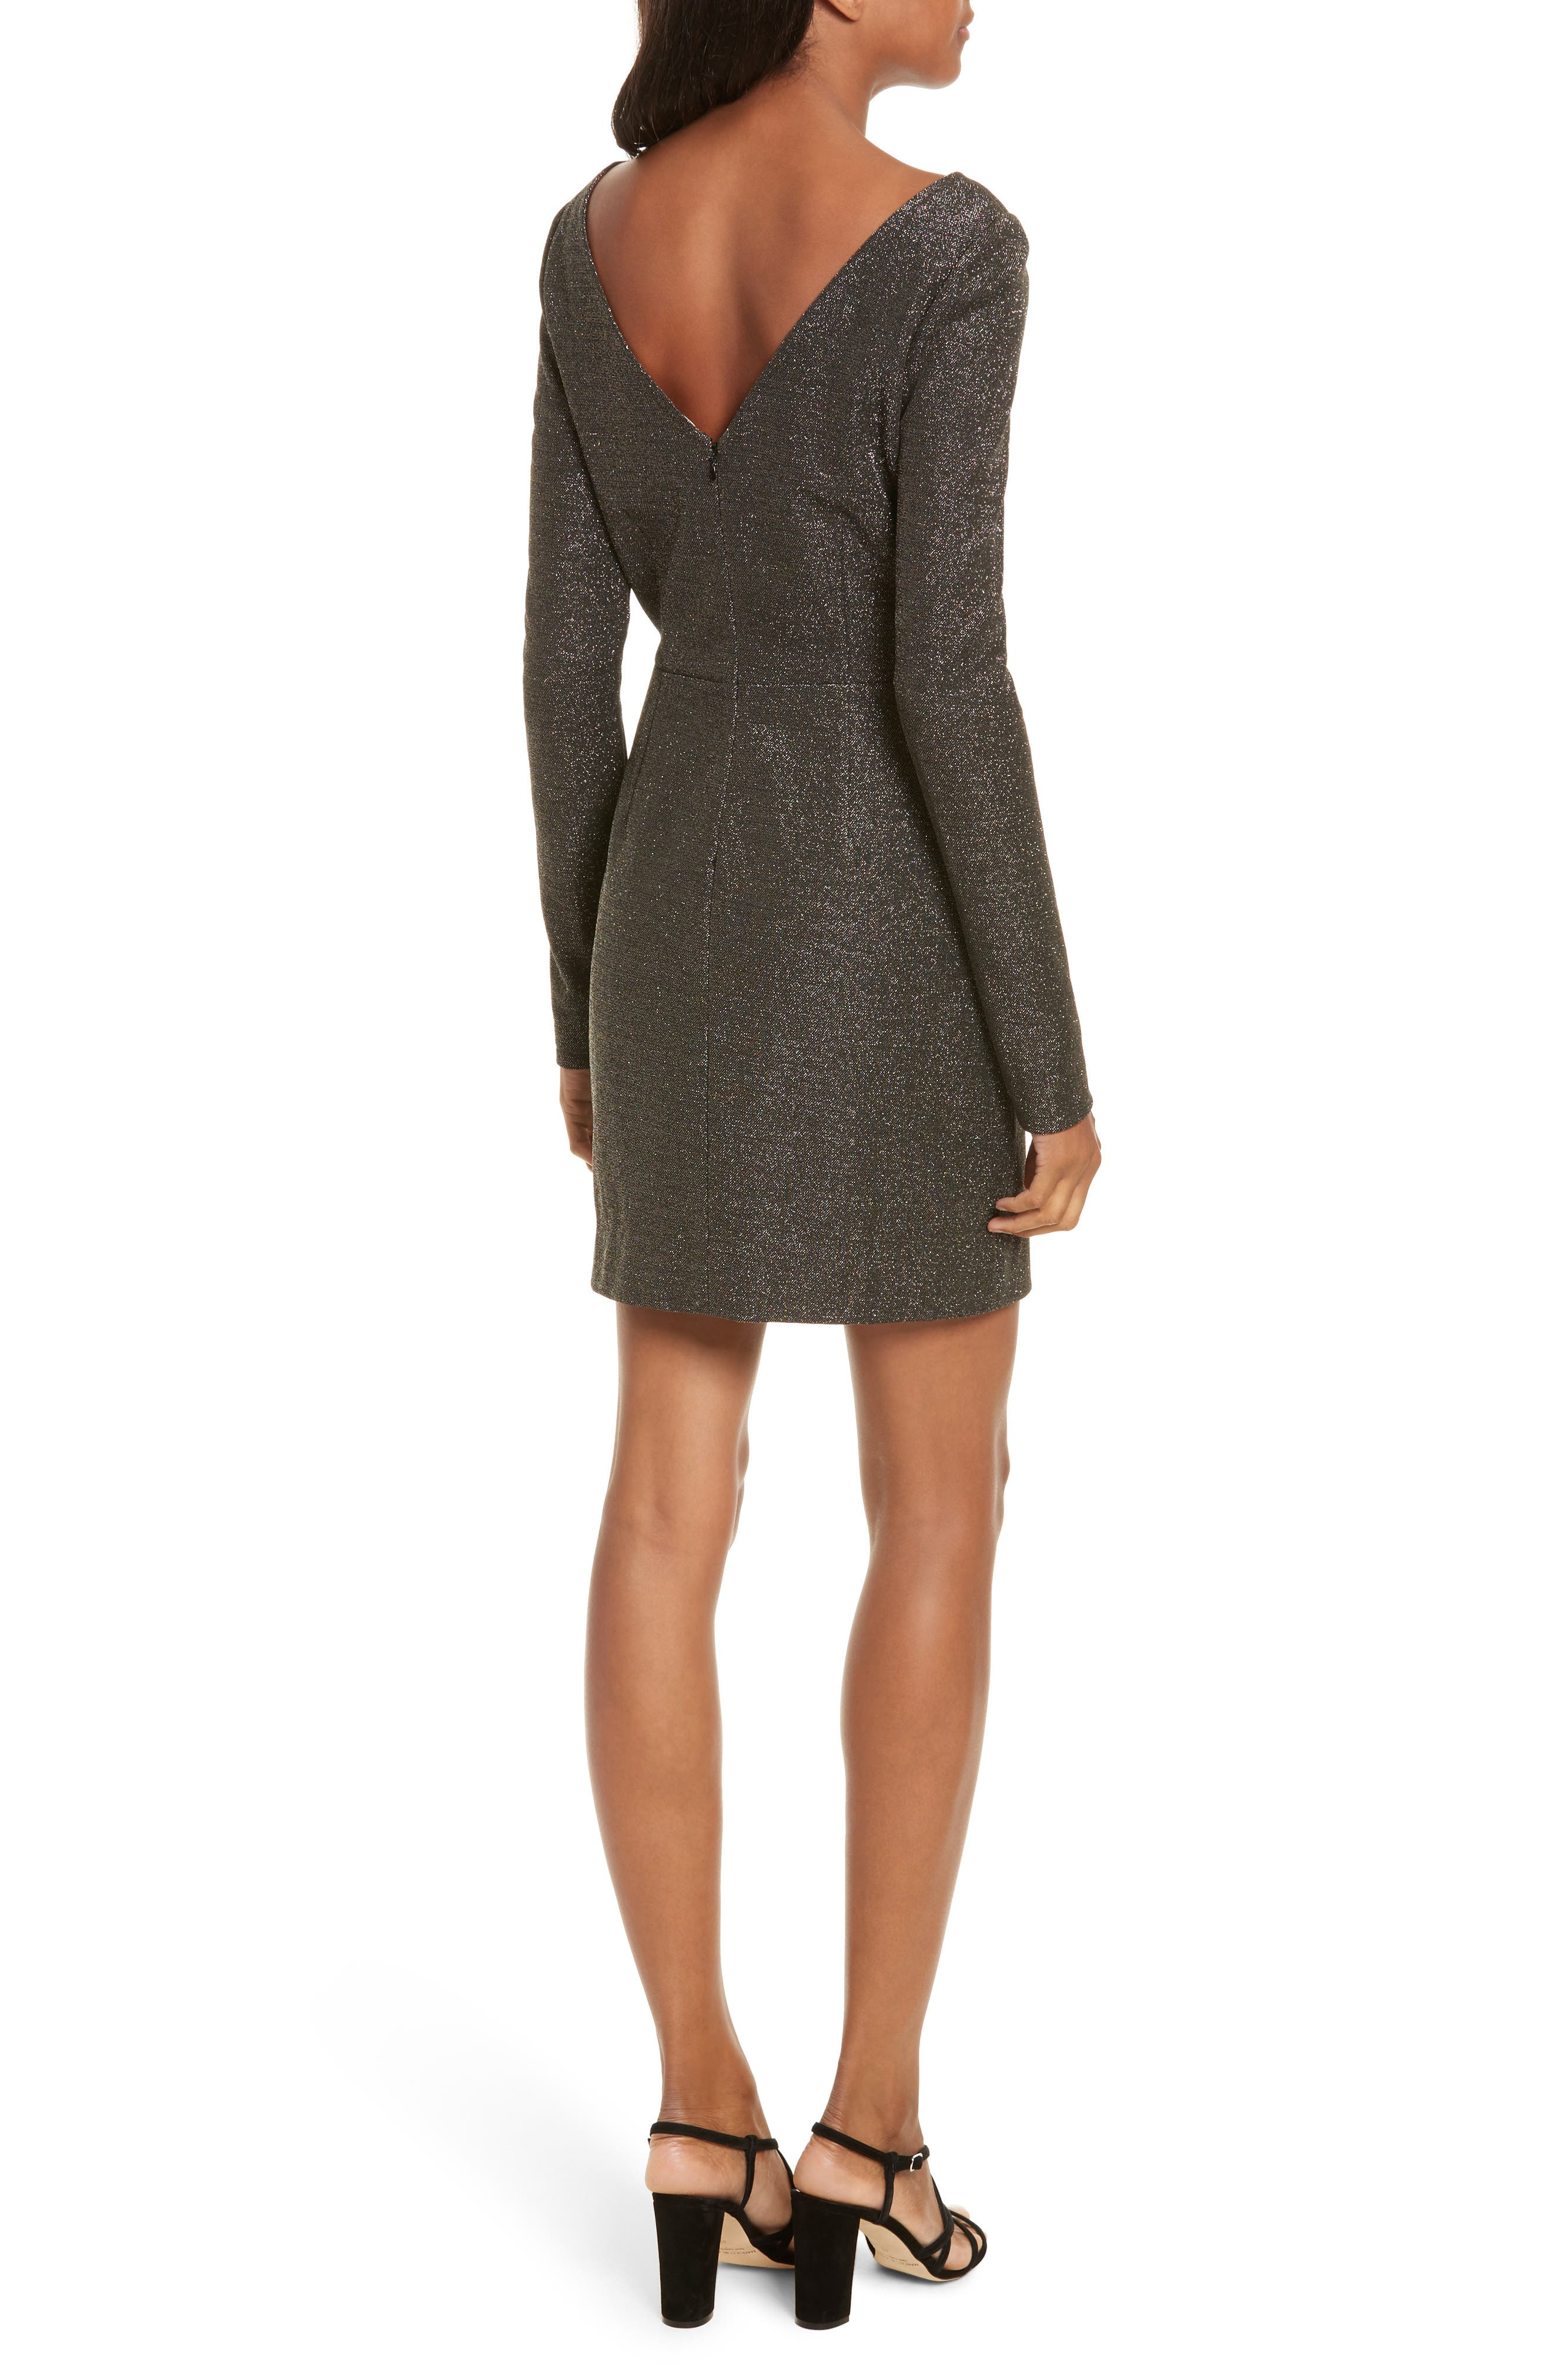 Diane von Furstenberg Sparkle Sheath Minidress,                             Alternate thumbnail 2, color,                             Black